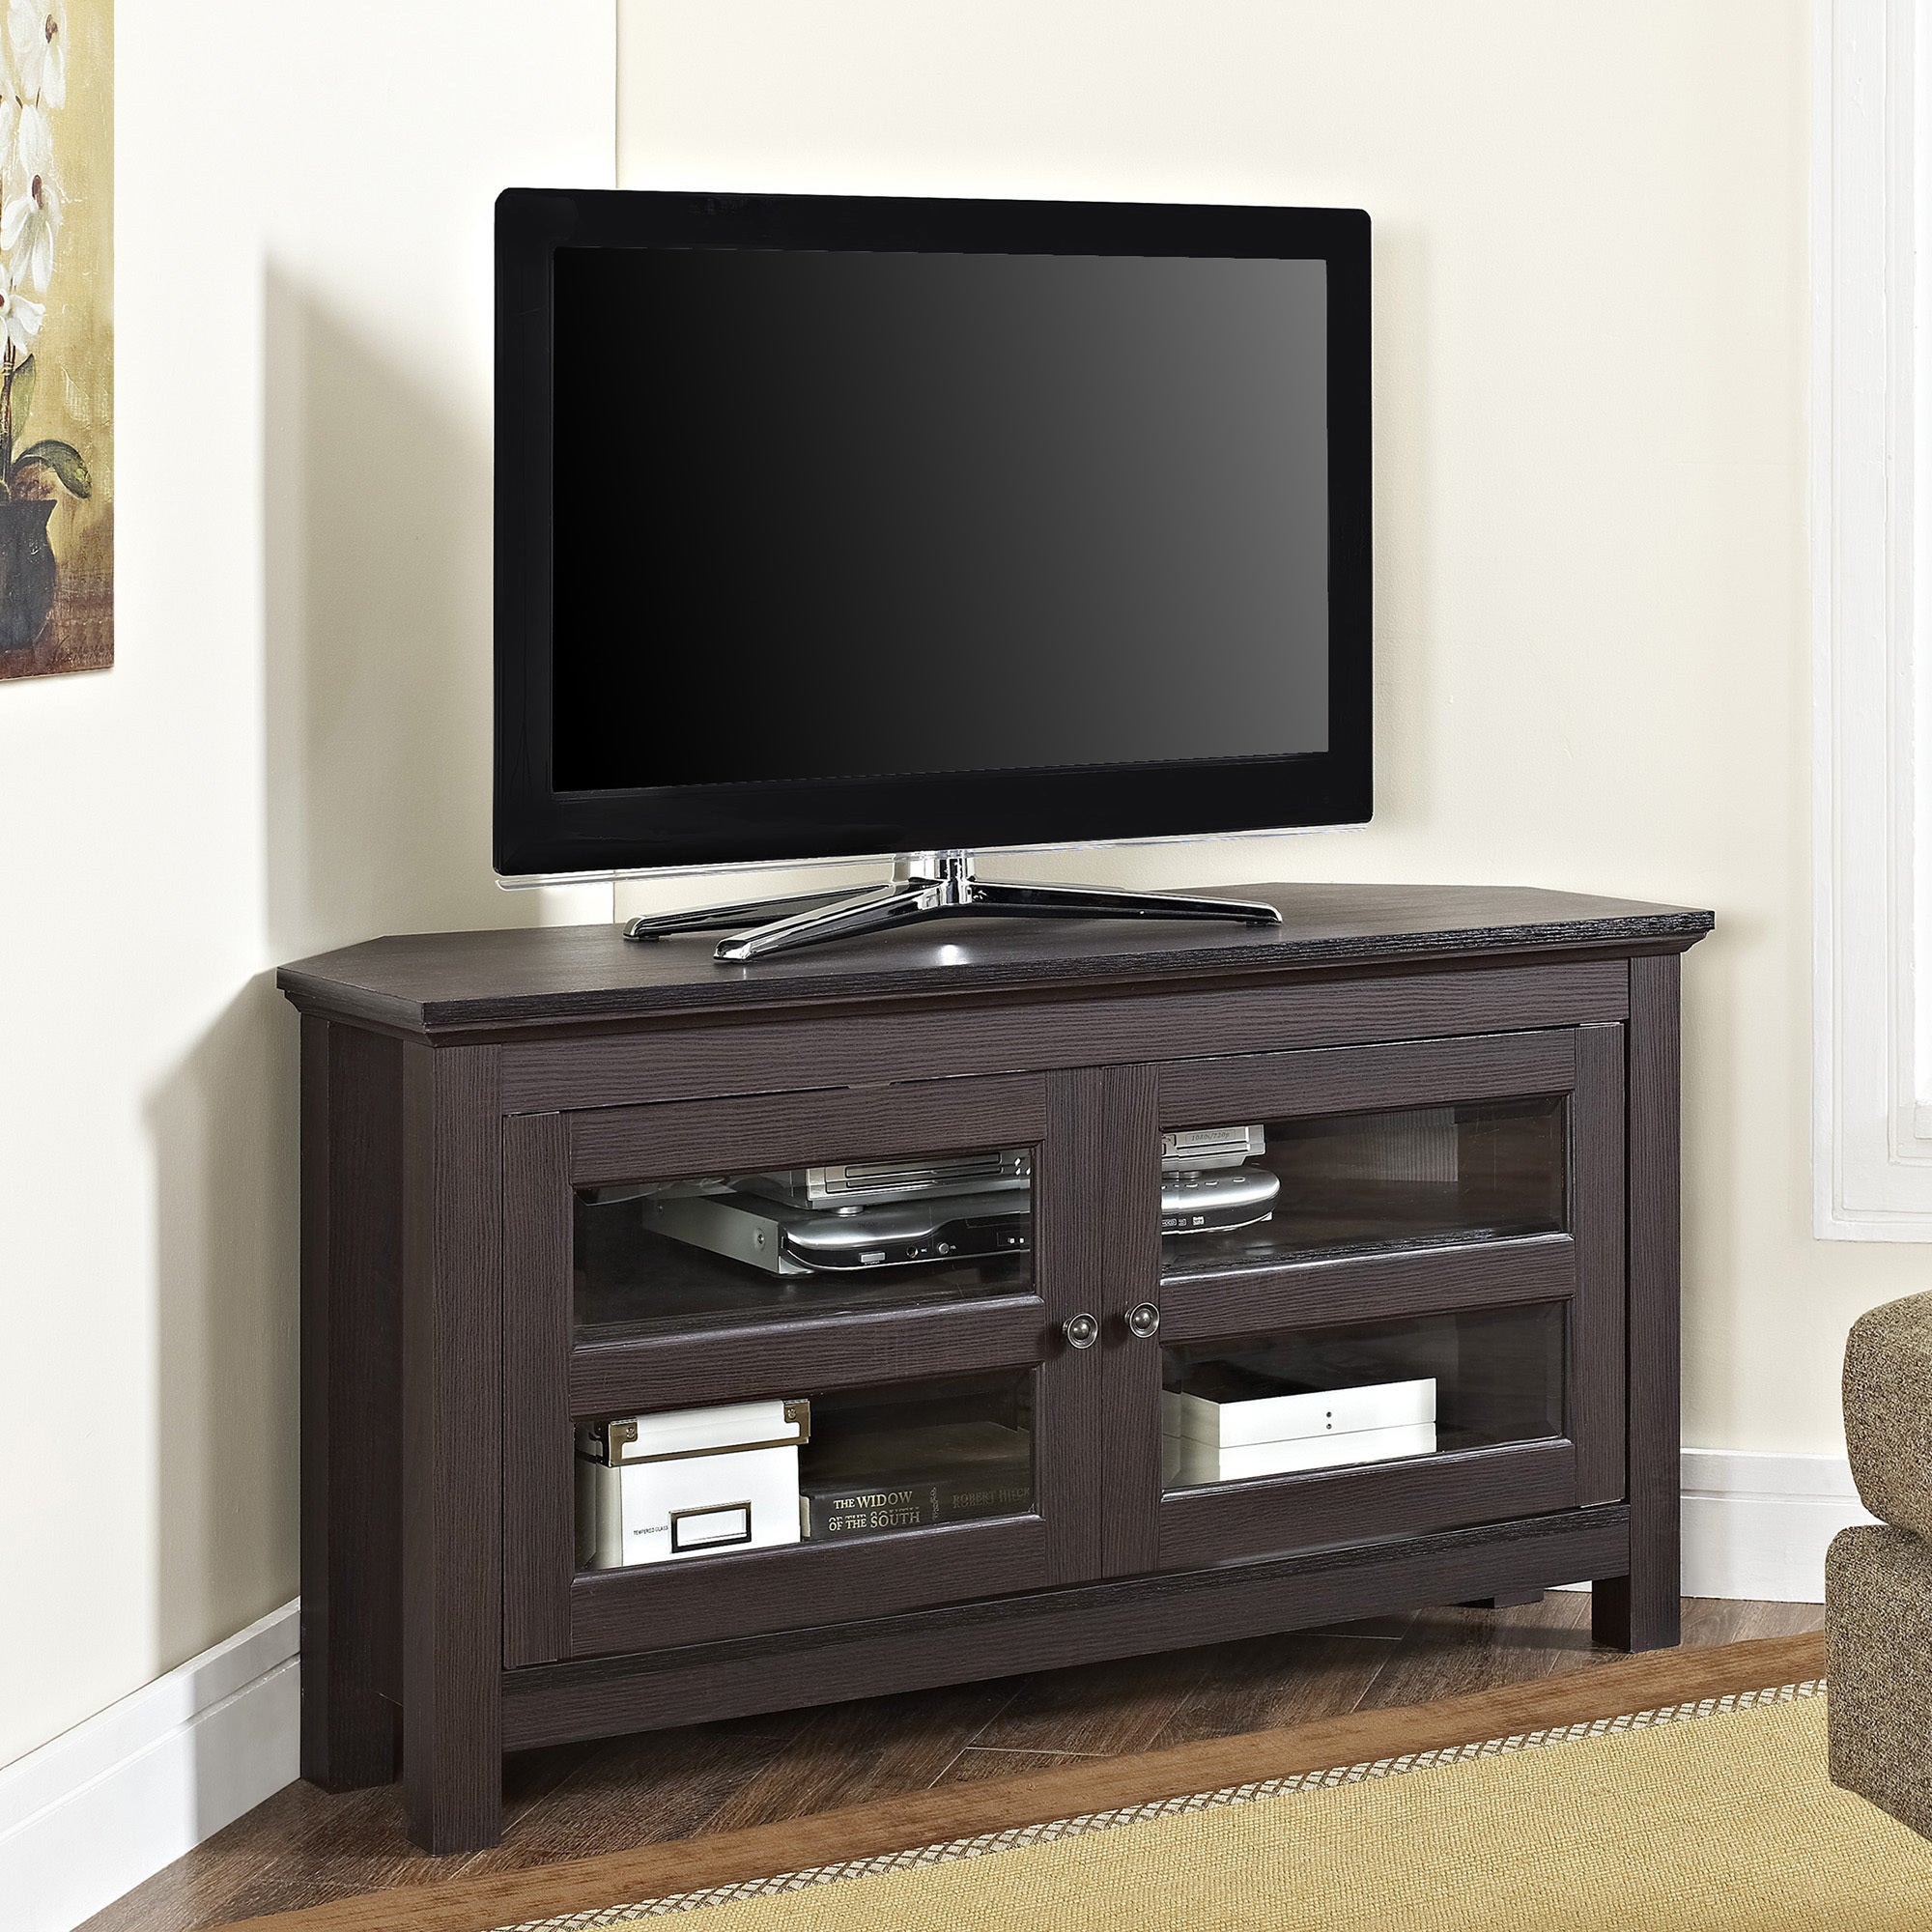 Shop Espresso Wood 44 Inch Corner Tv Stand Free Shipping On Orders